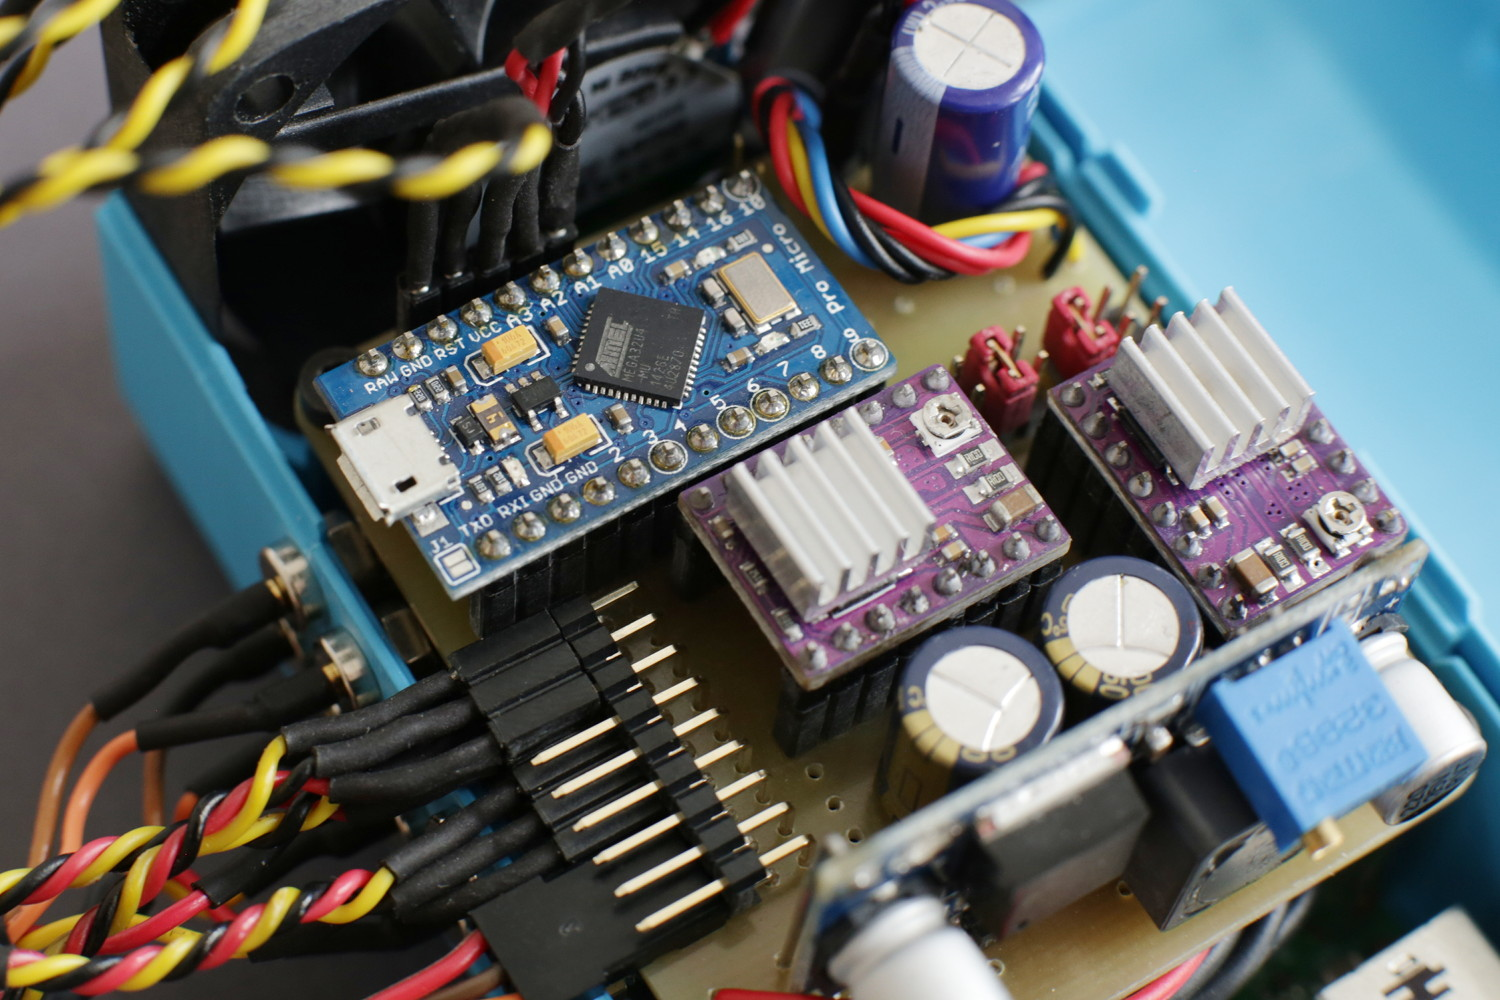 Attaching the Arduino Pro Micro is the last step and completes your Monkeyprint DLP printer controller board.